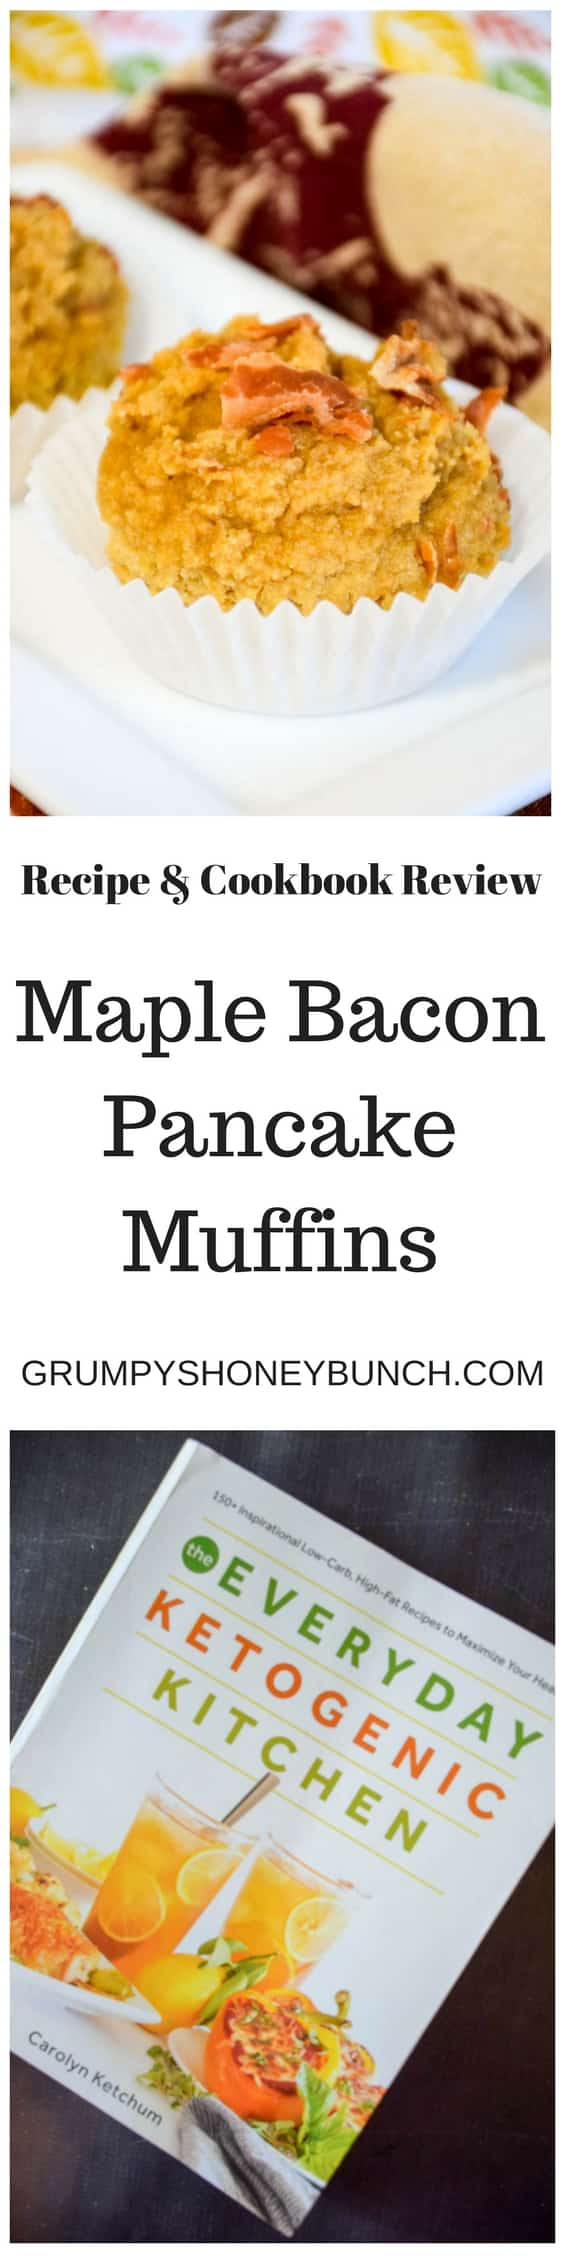 Everyday Ketogenic Cookbook Review - Maple Bacon Pancake Muffins